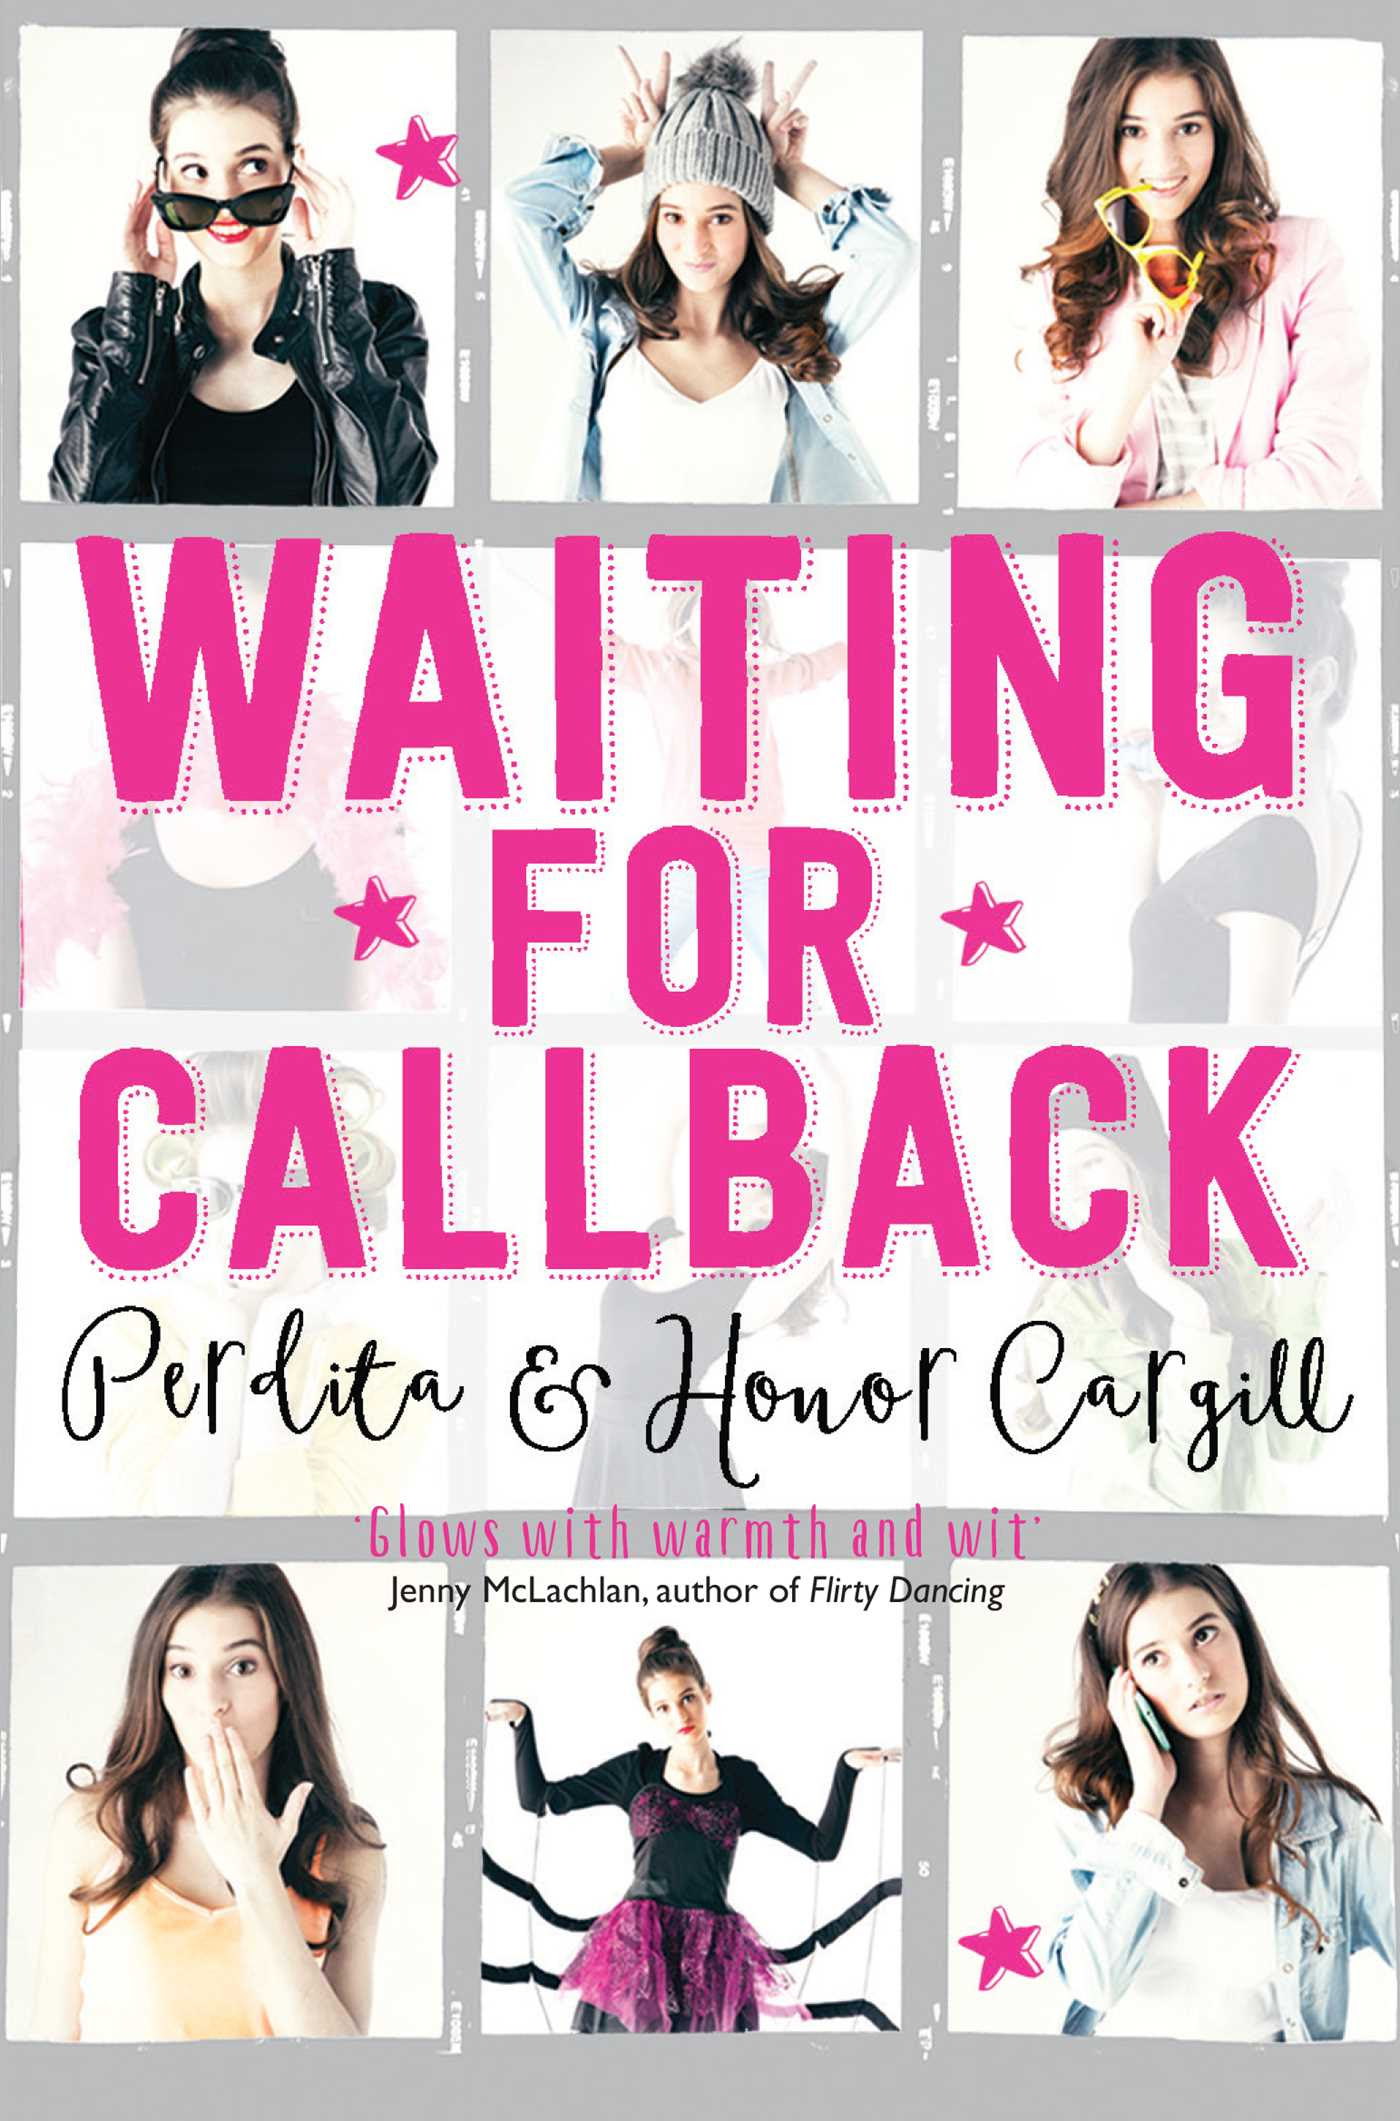 Waiting-for-callback-9781471144844_hr